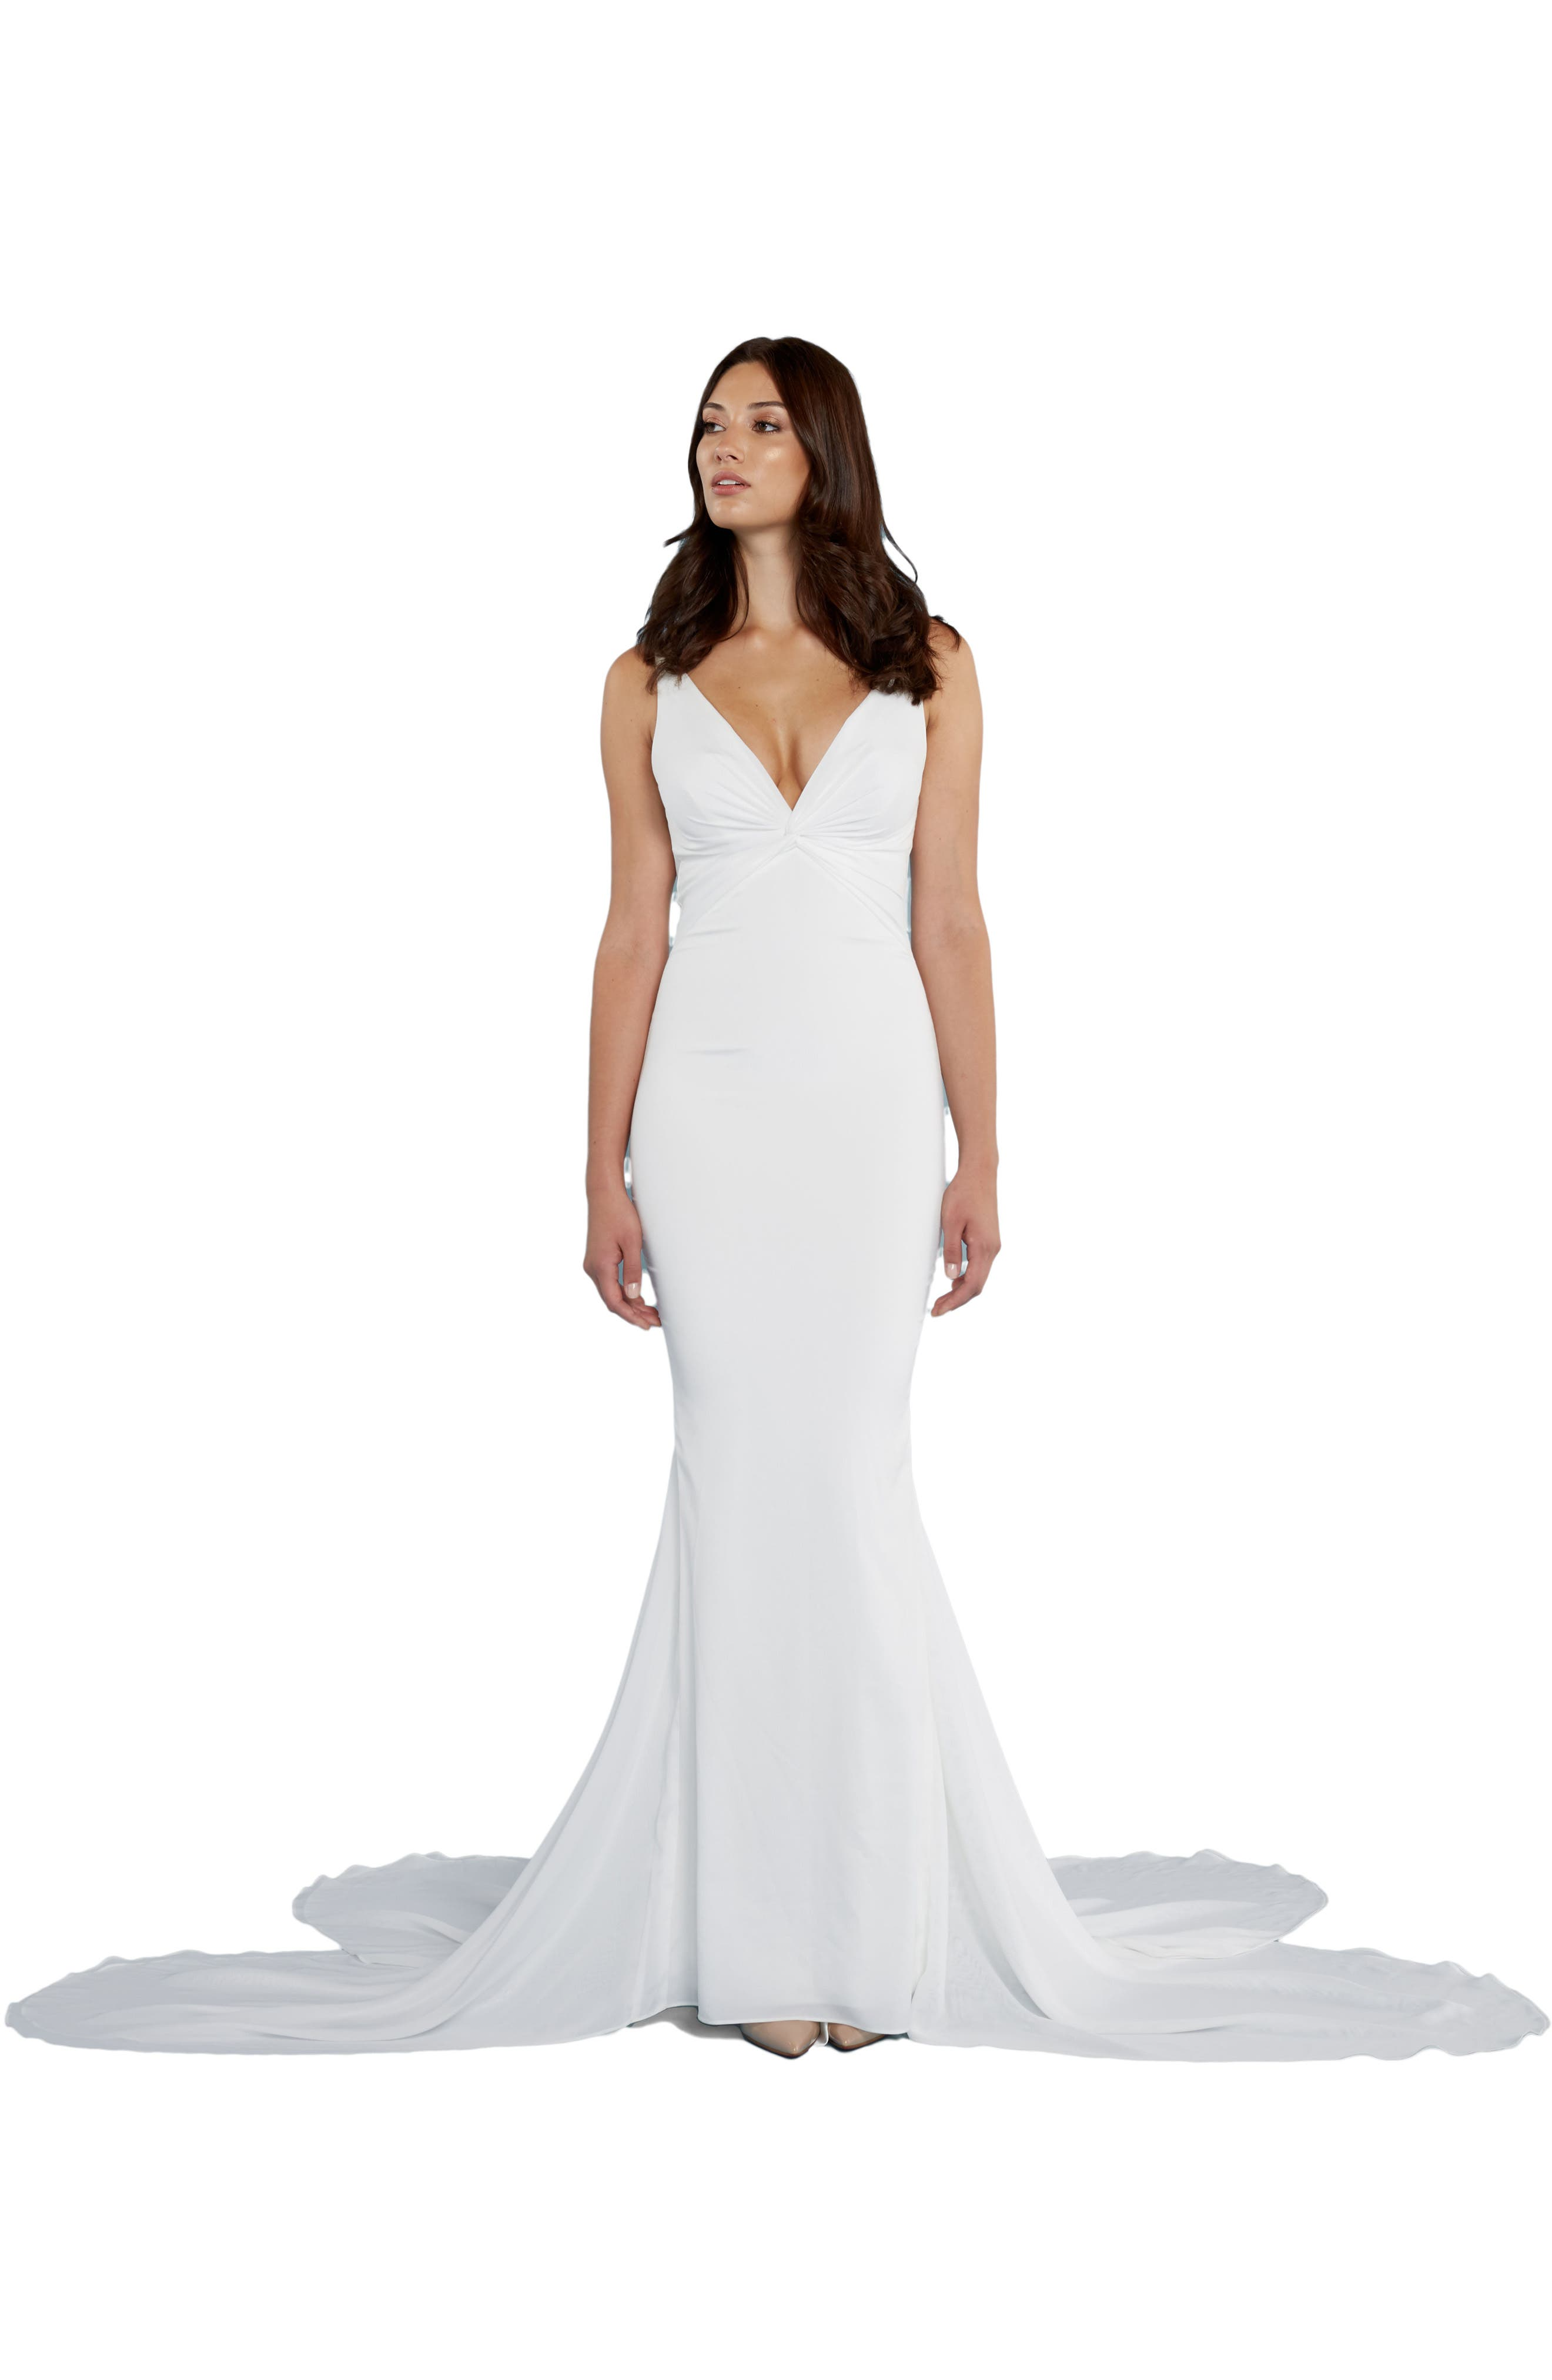 Katie May 'Mykonos' Twist Front Crêpe de Chine Mermaid Gown